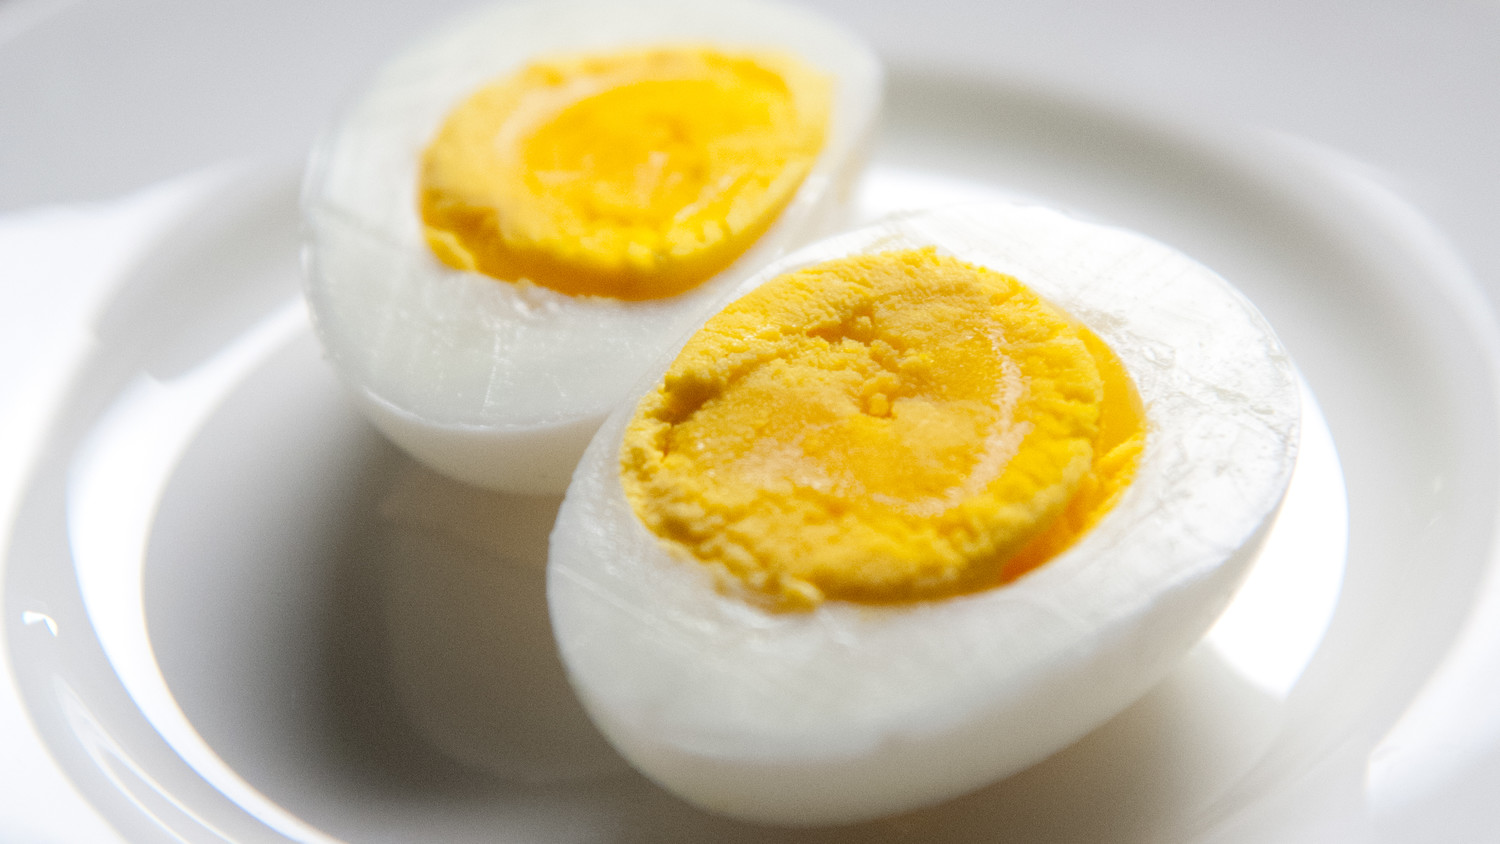 Video Simple Tips On How To Peel A Hard Boiled Egg